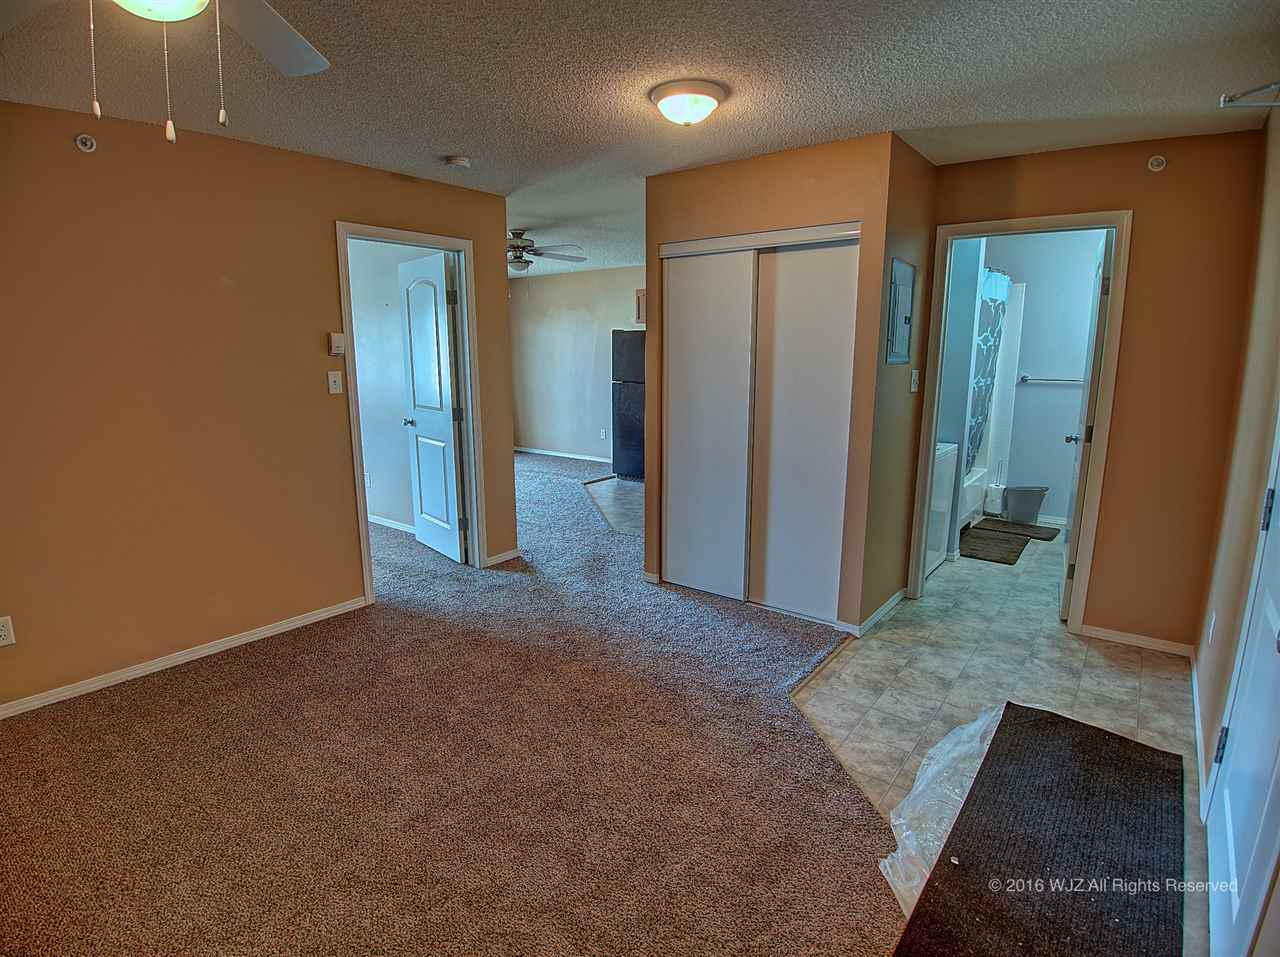 Photo 2: 423 70 woodsmere Close: Fort Saskatchewan Condo for sale : MLS(r) # E4031999